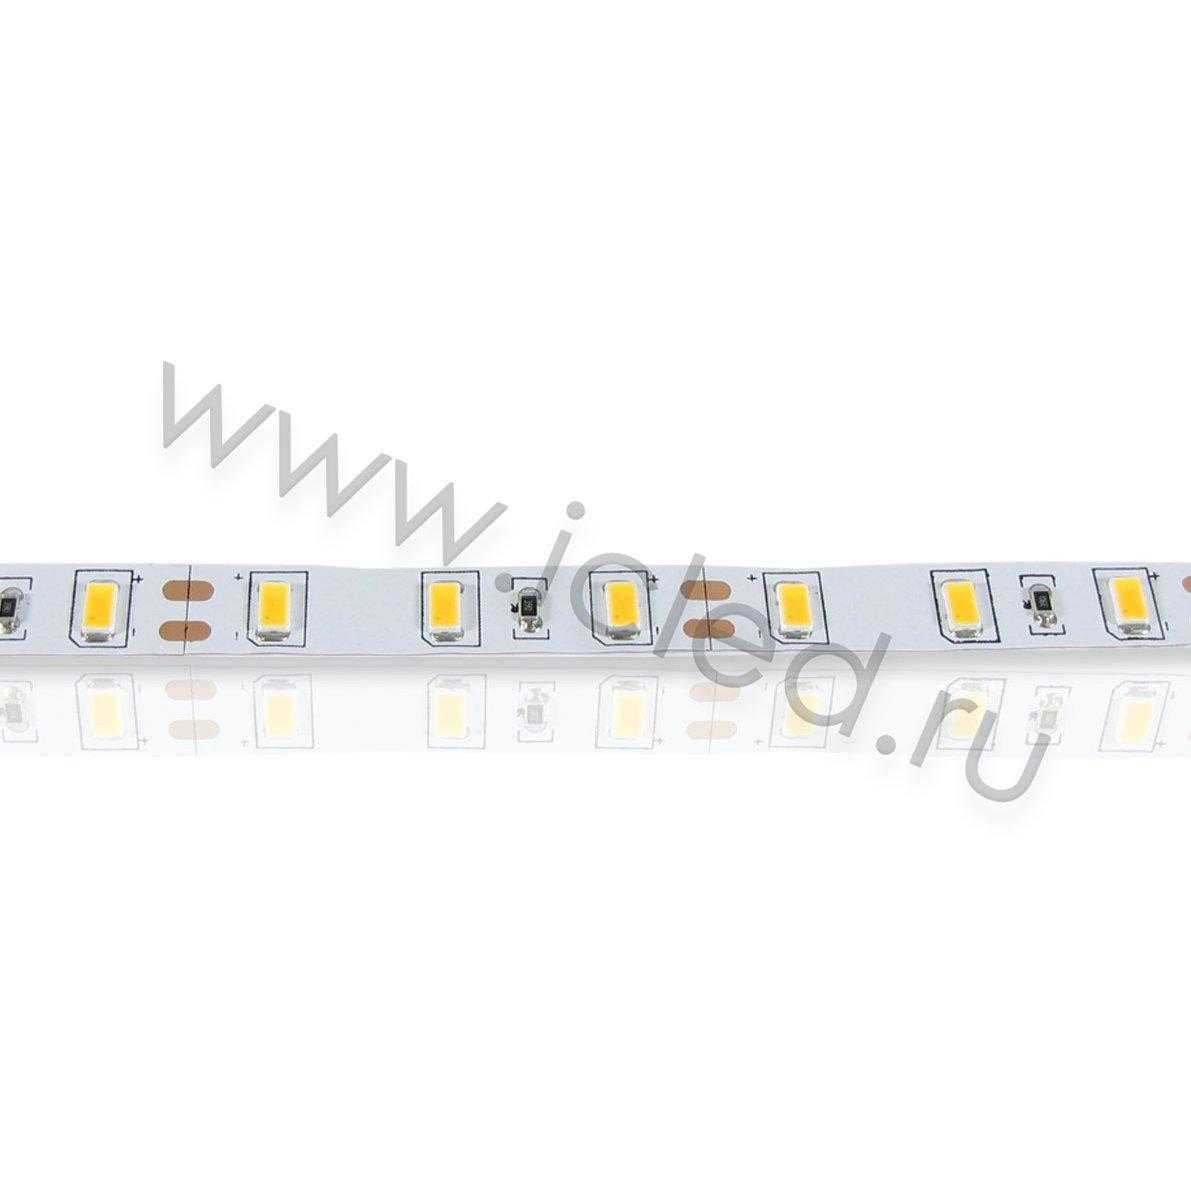 Светодиодная лента Standart PRO Class, 5630, 60led/m, warm white, 12V, IP33, P308